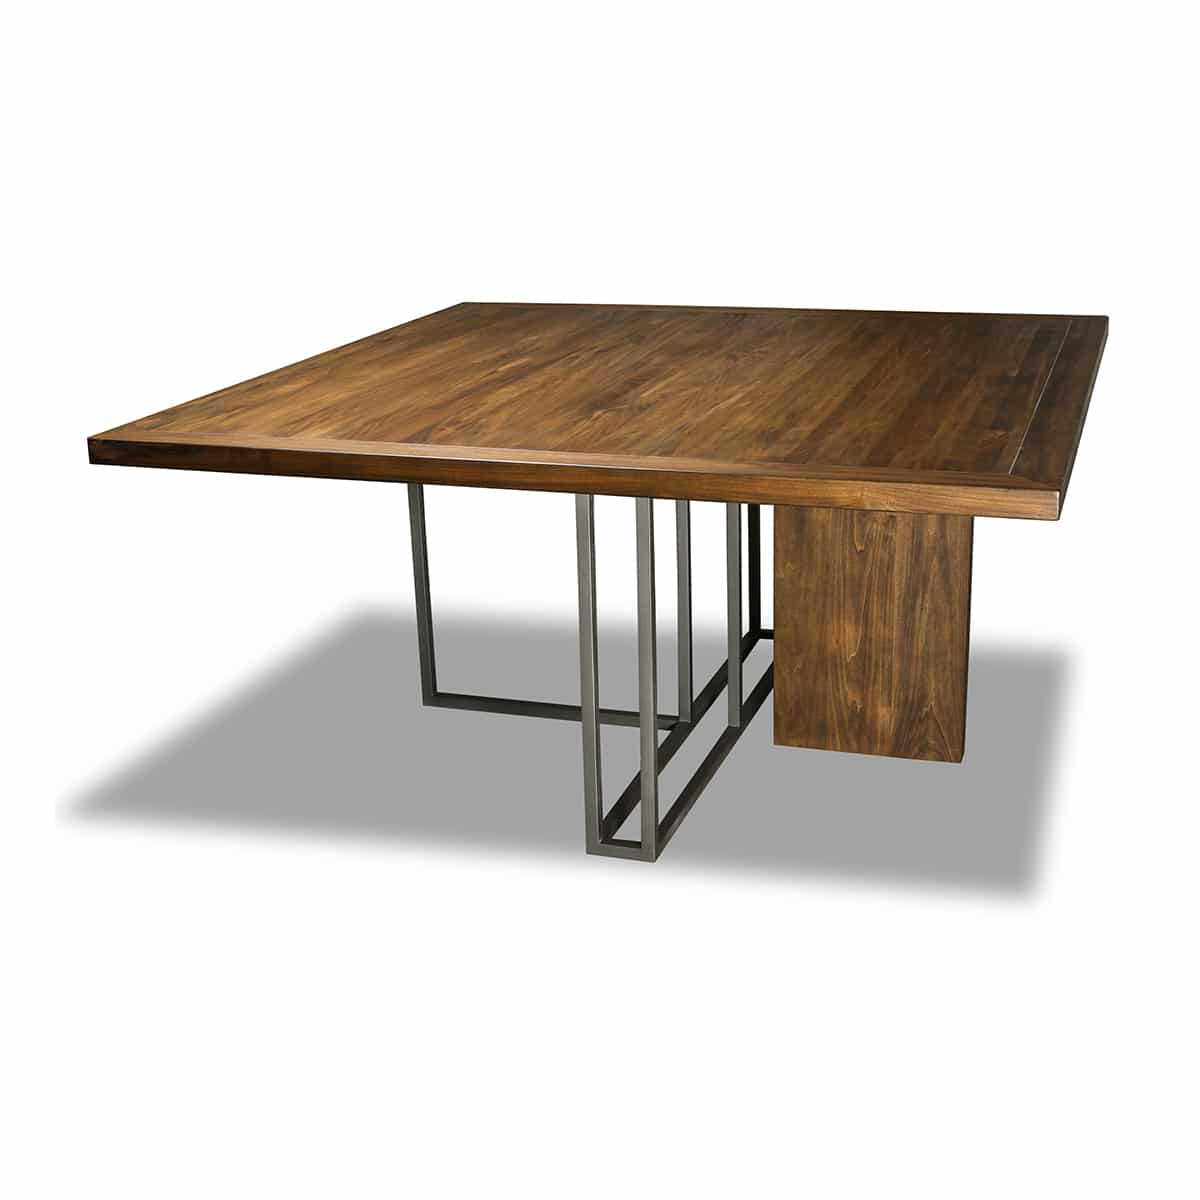 Highmount Square Dining Table South Cone Home Furniture Square Dining Tables Dining Table Solid Wood Dining Table